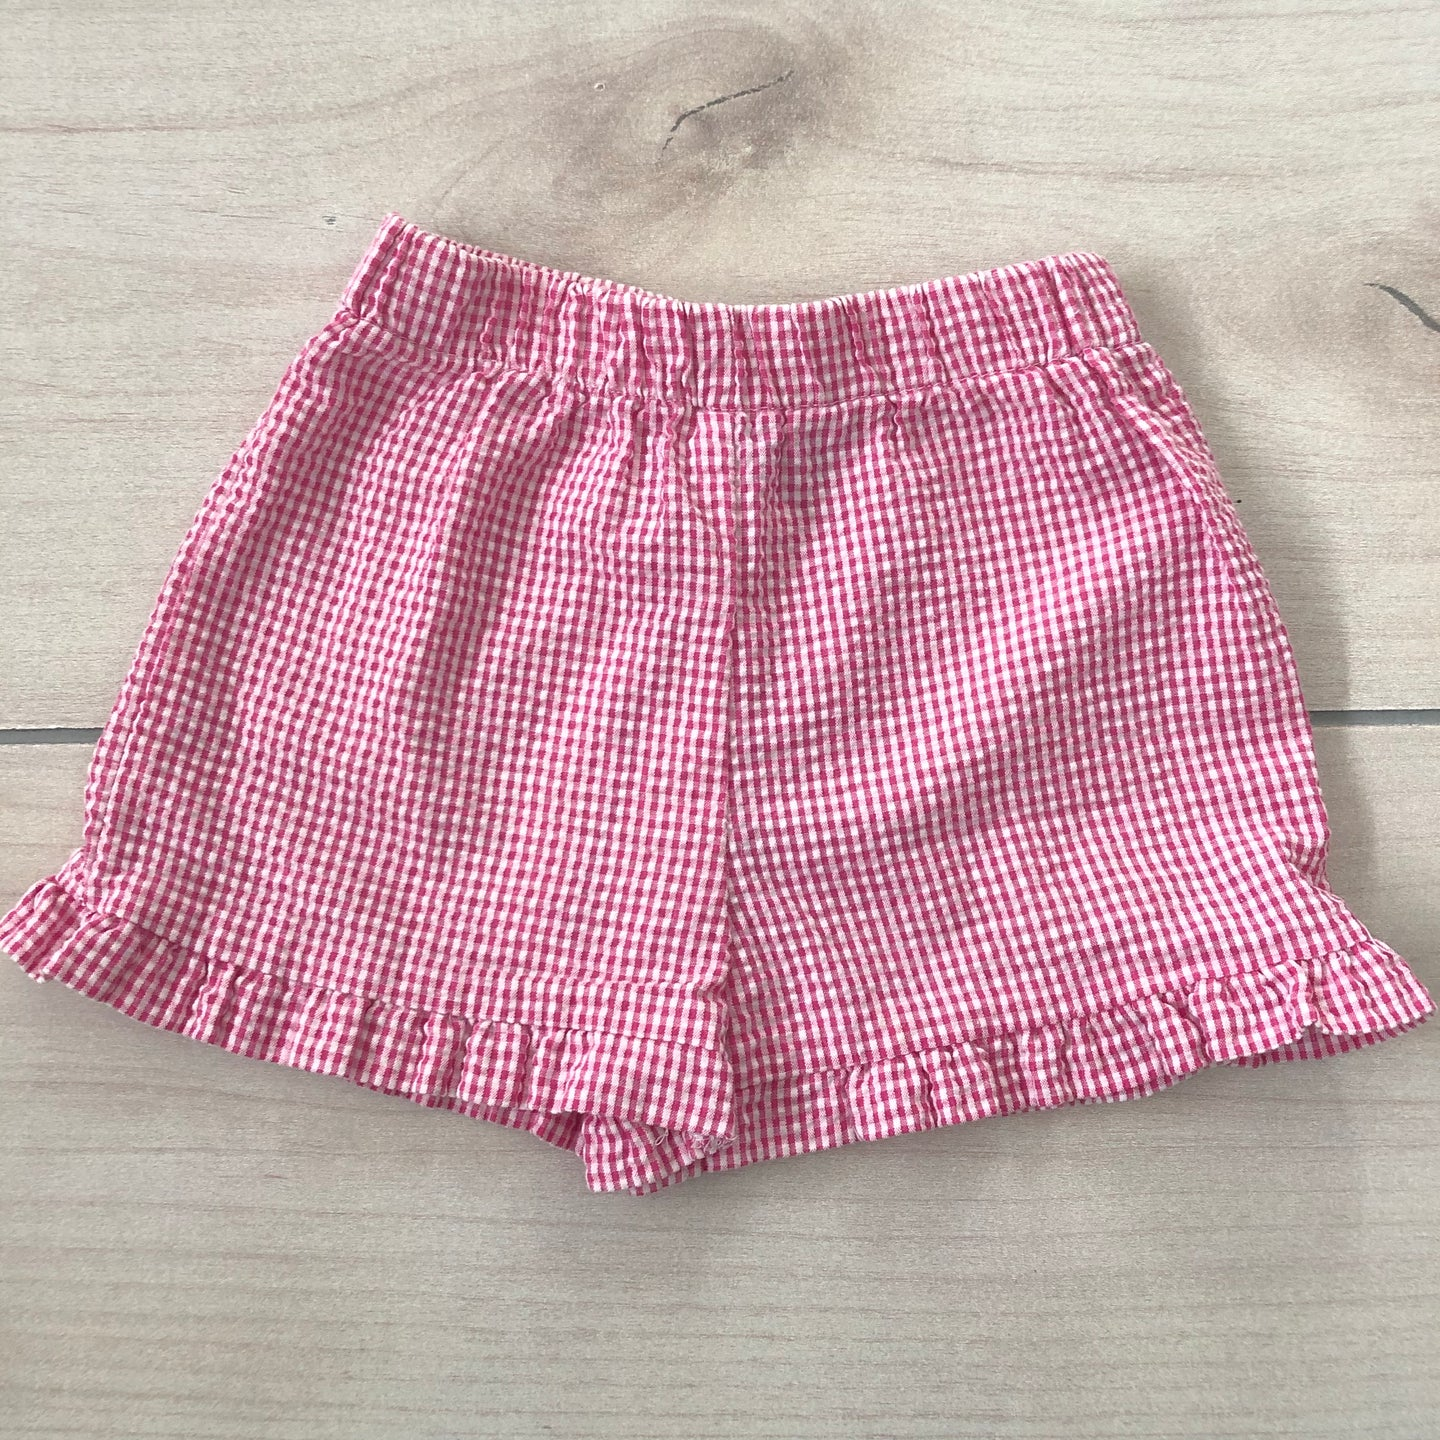 Funtasia Too Pink Gingham Shorts Size 2